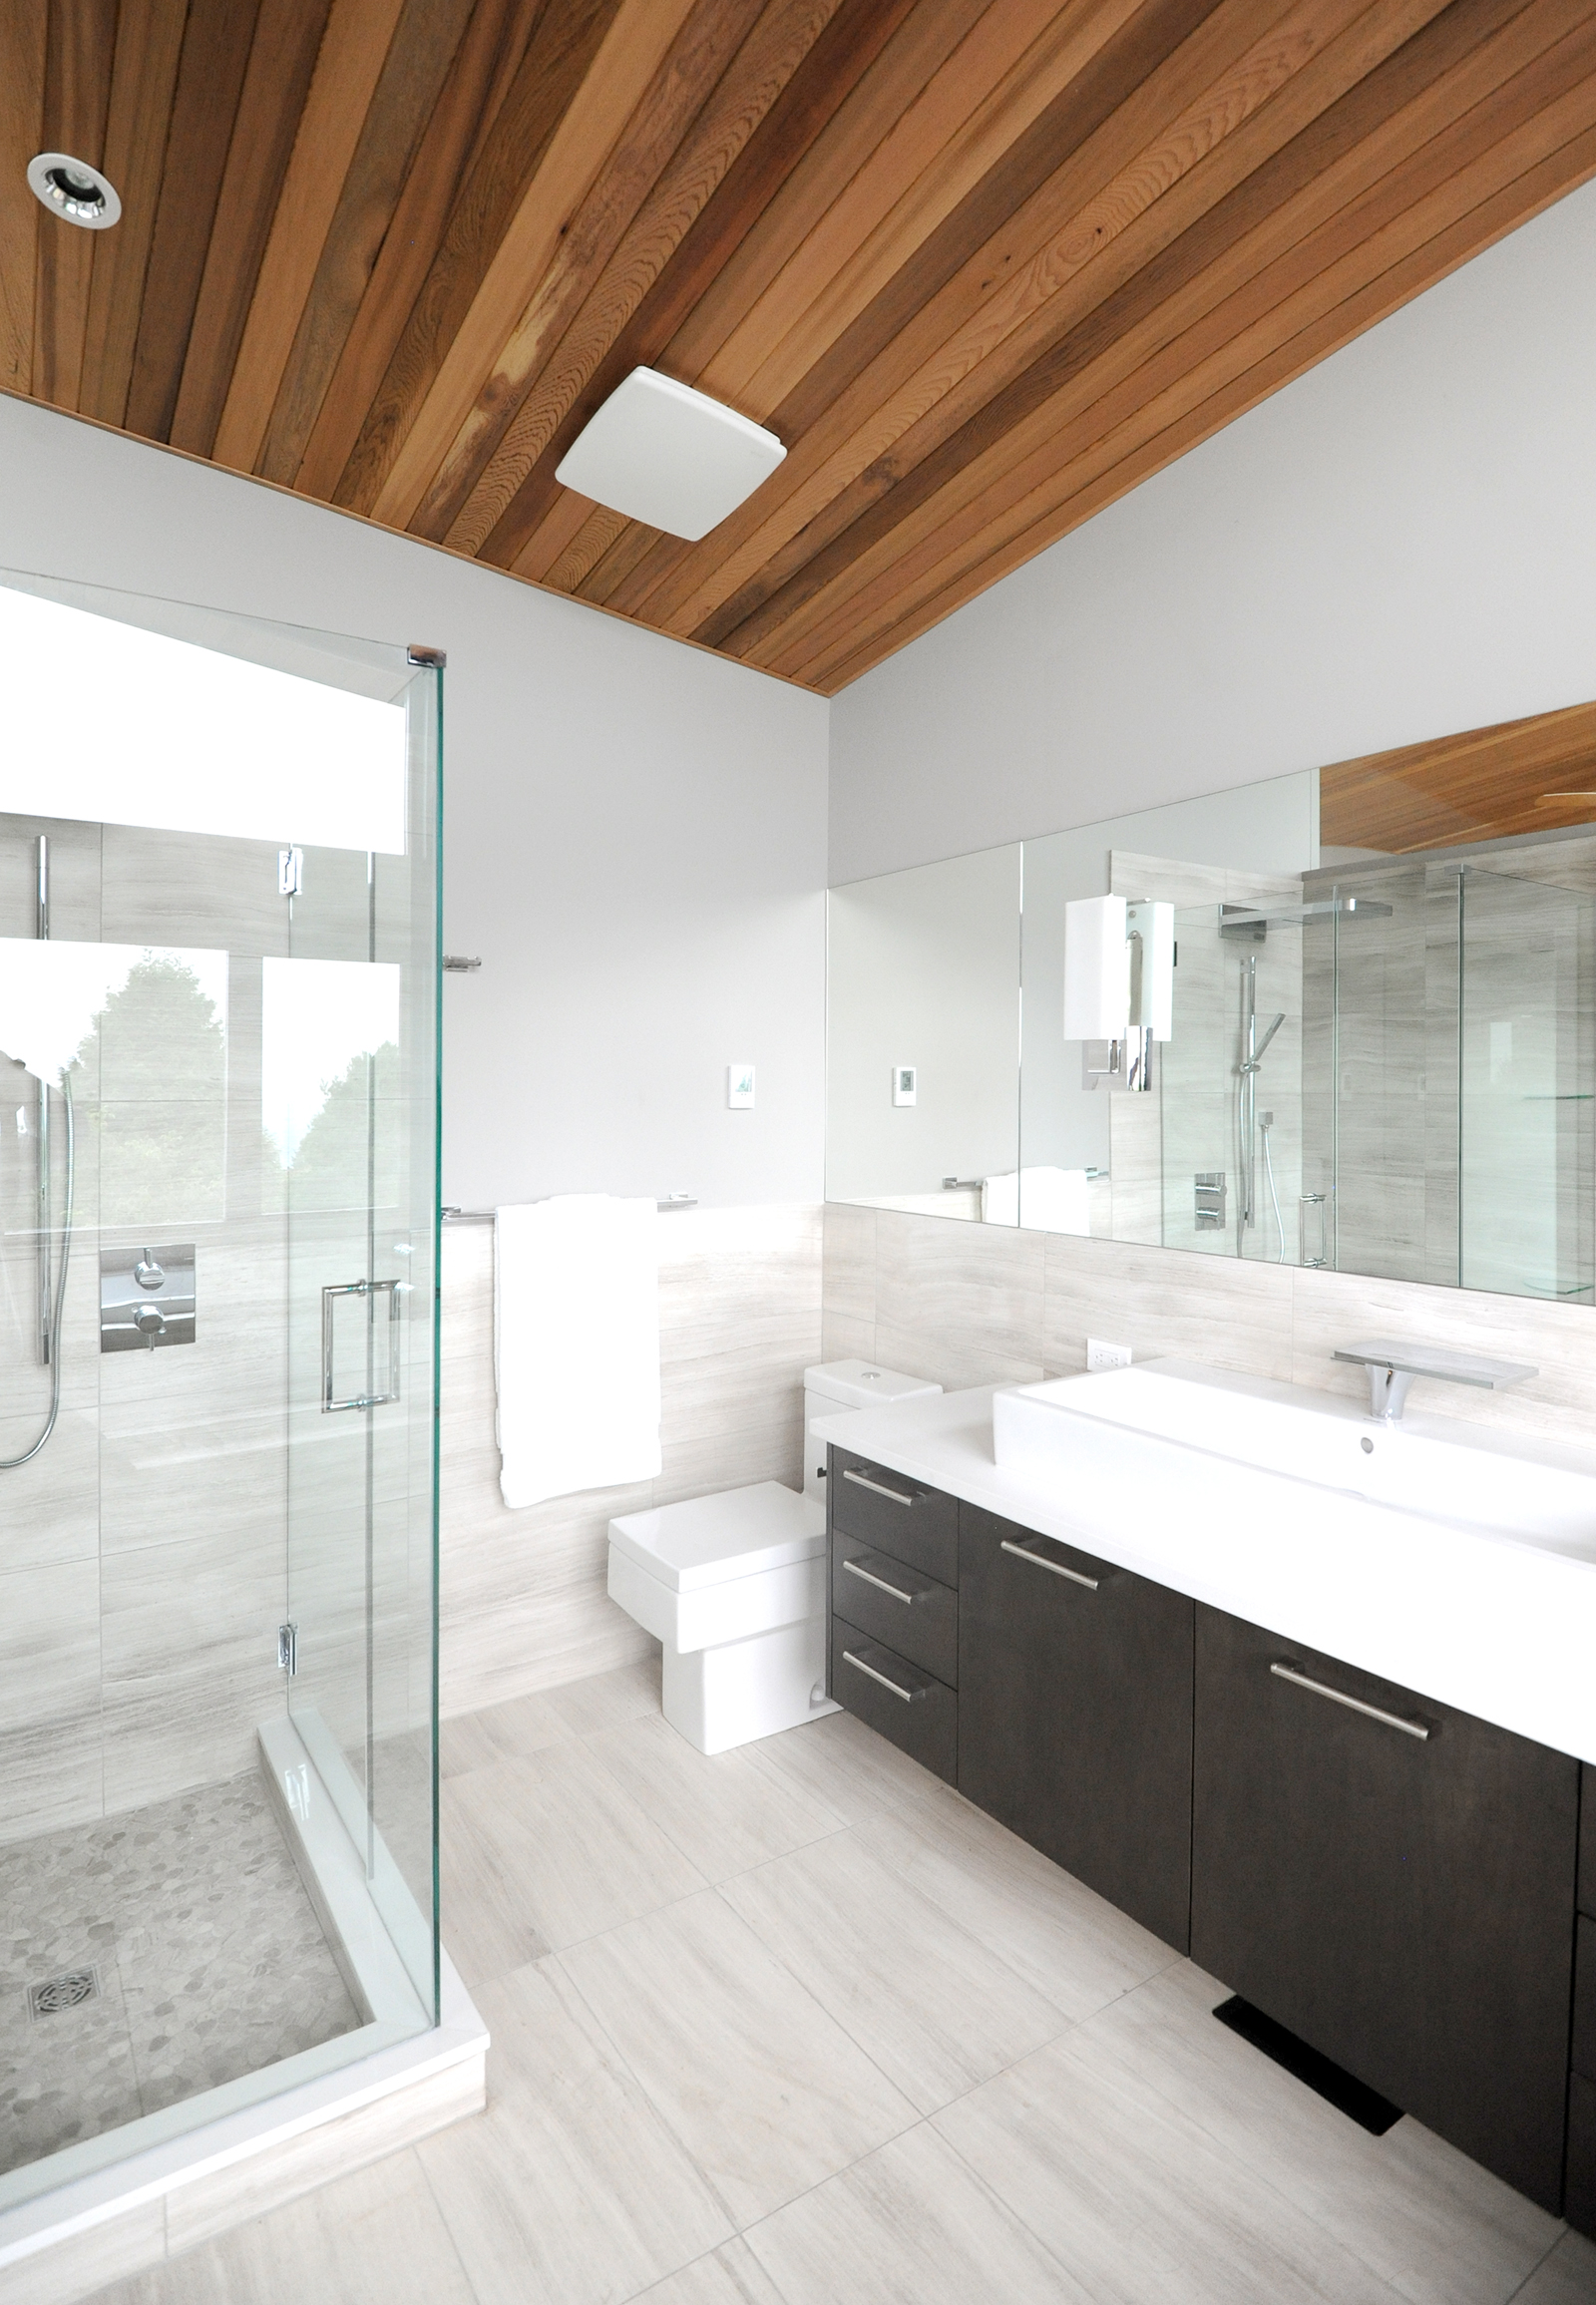 turkel_modern_design_prefab_home_west_vancouver_bathroom.jpg